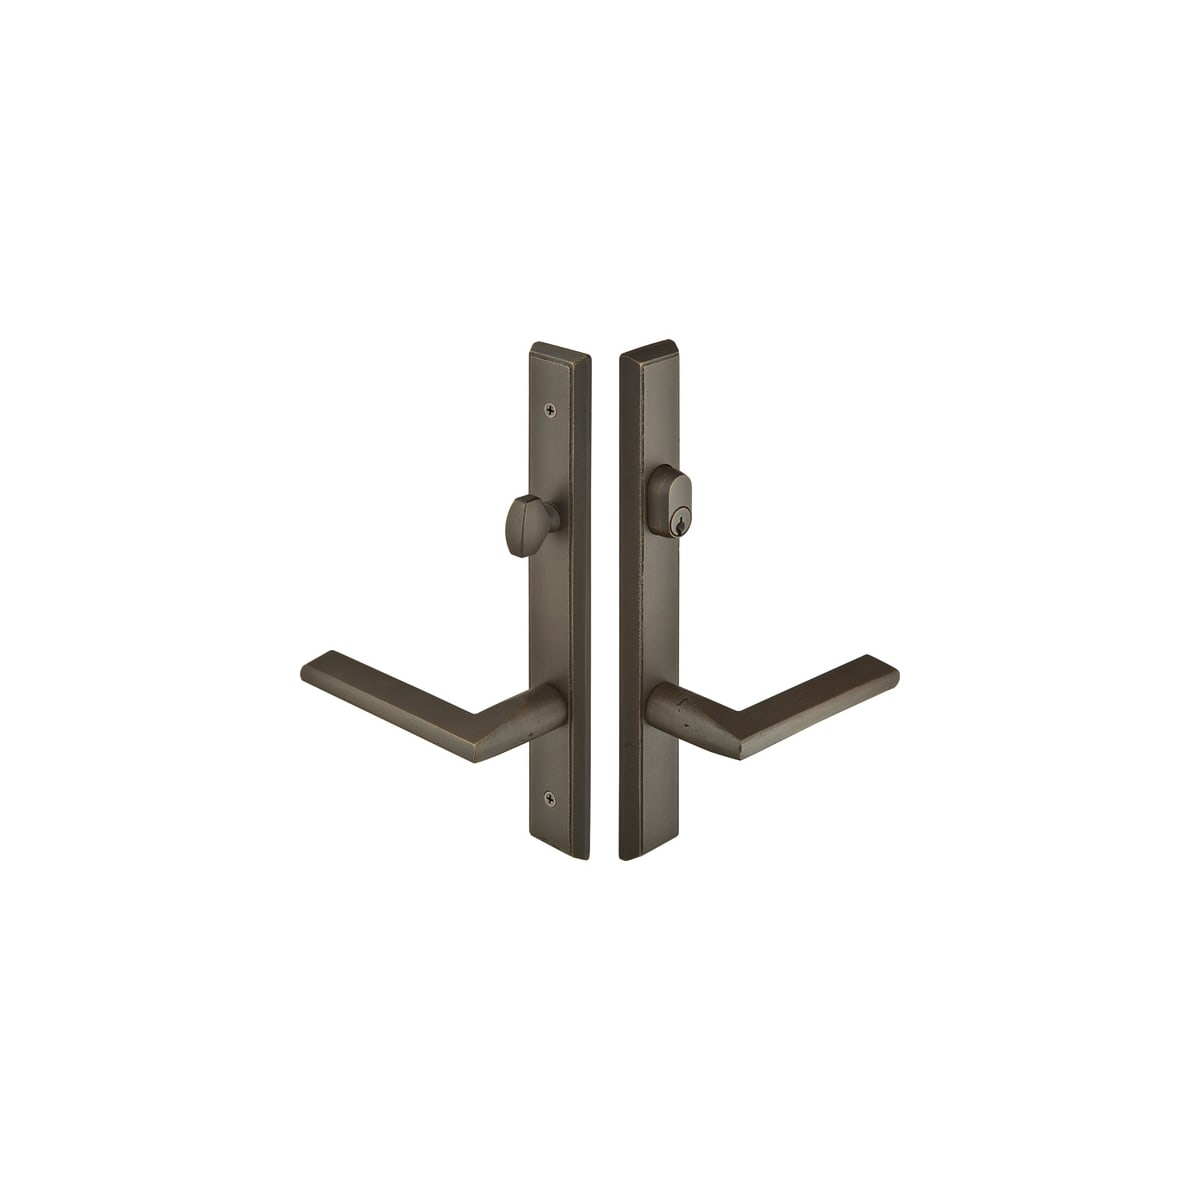 Emtek Sandcast Bronze Door Configuration 3 Inactive Multi Point Trim Lever Set with American Cylinder Above Handle